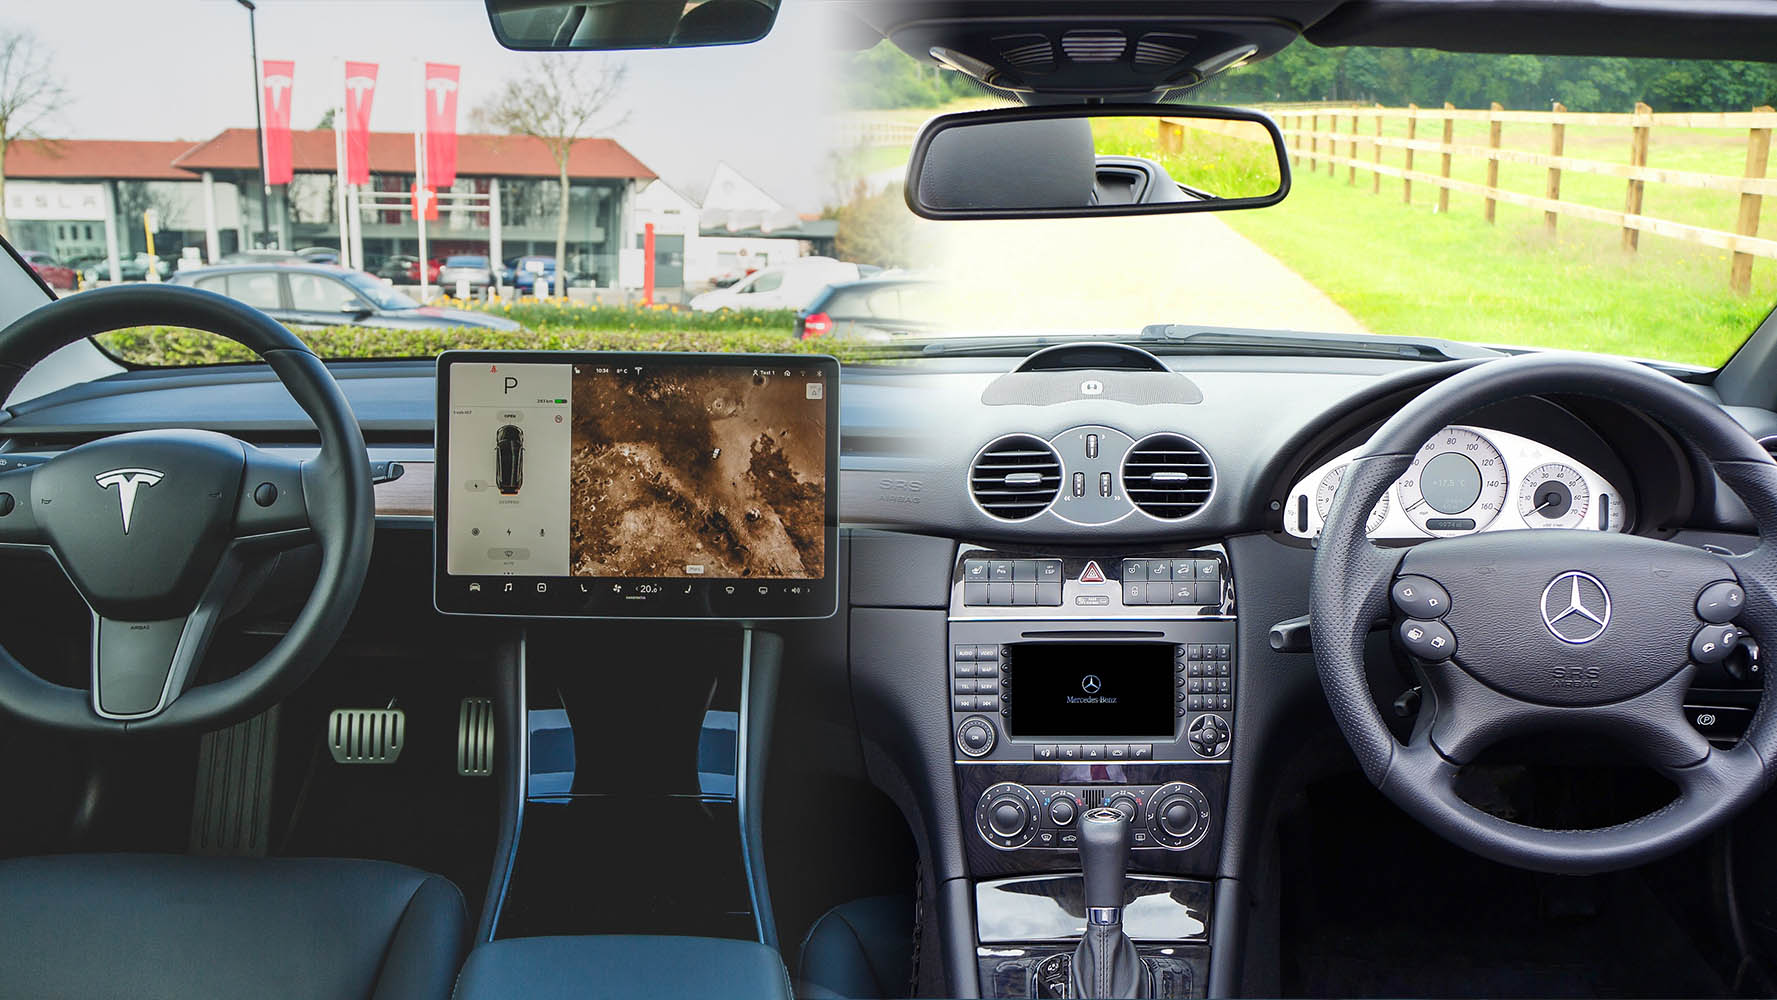 touchscreen vs buttons infotainment systems